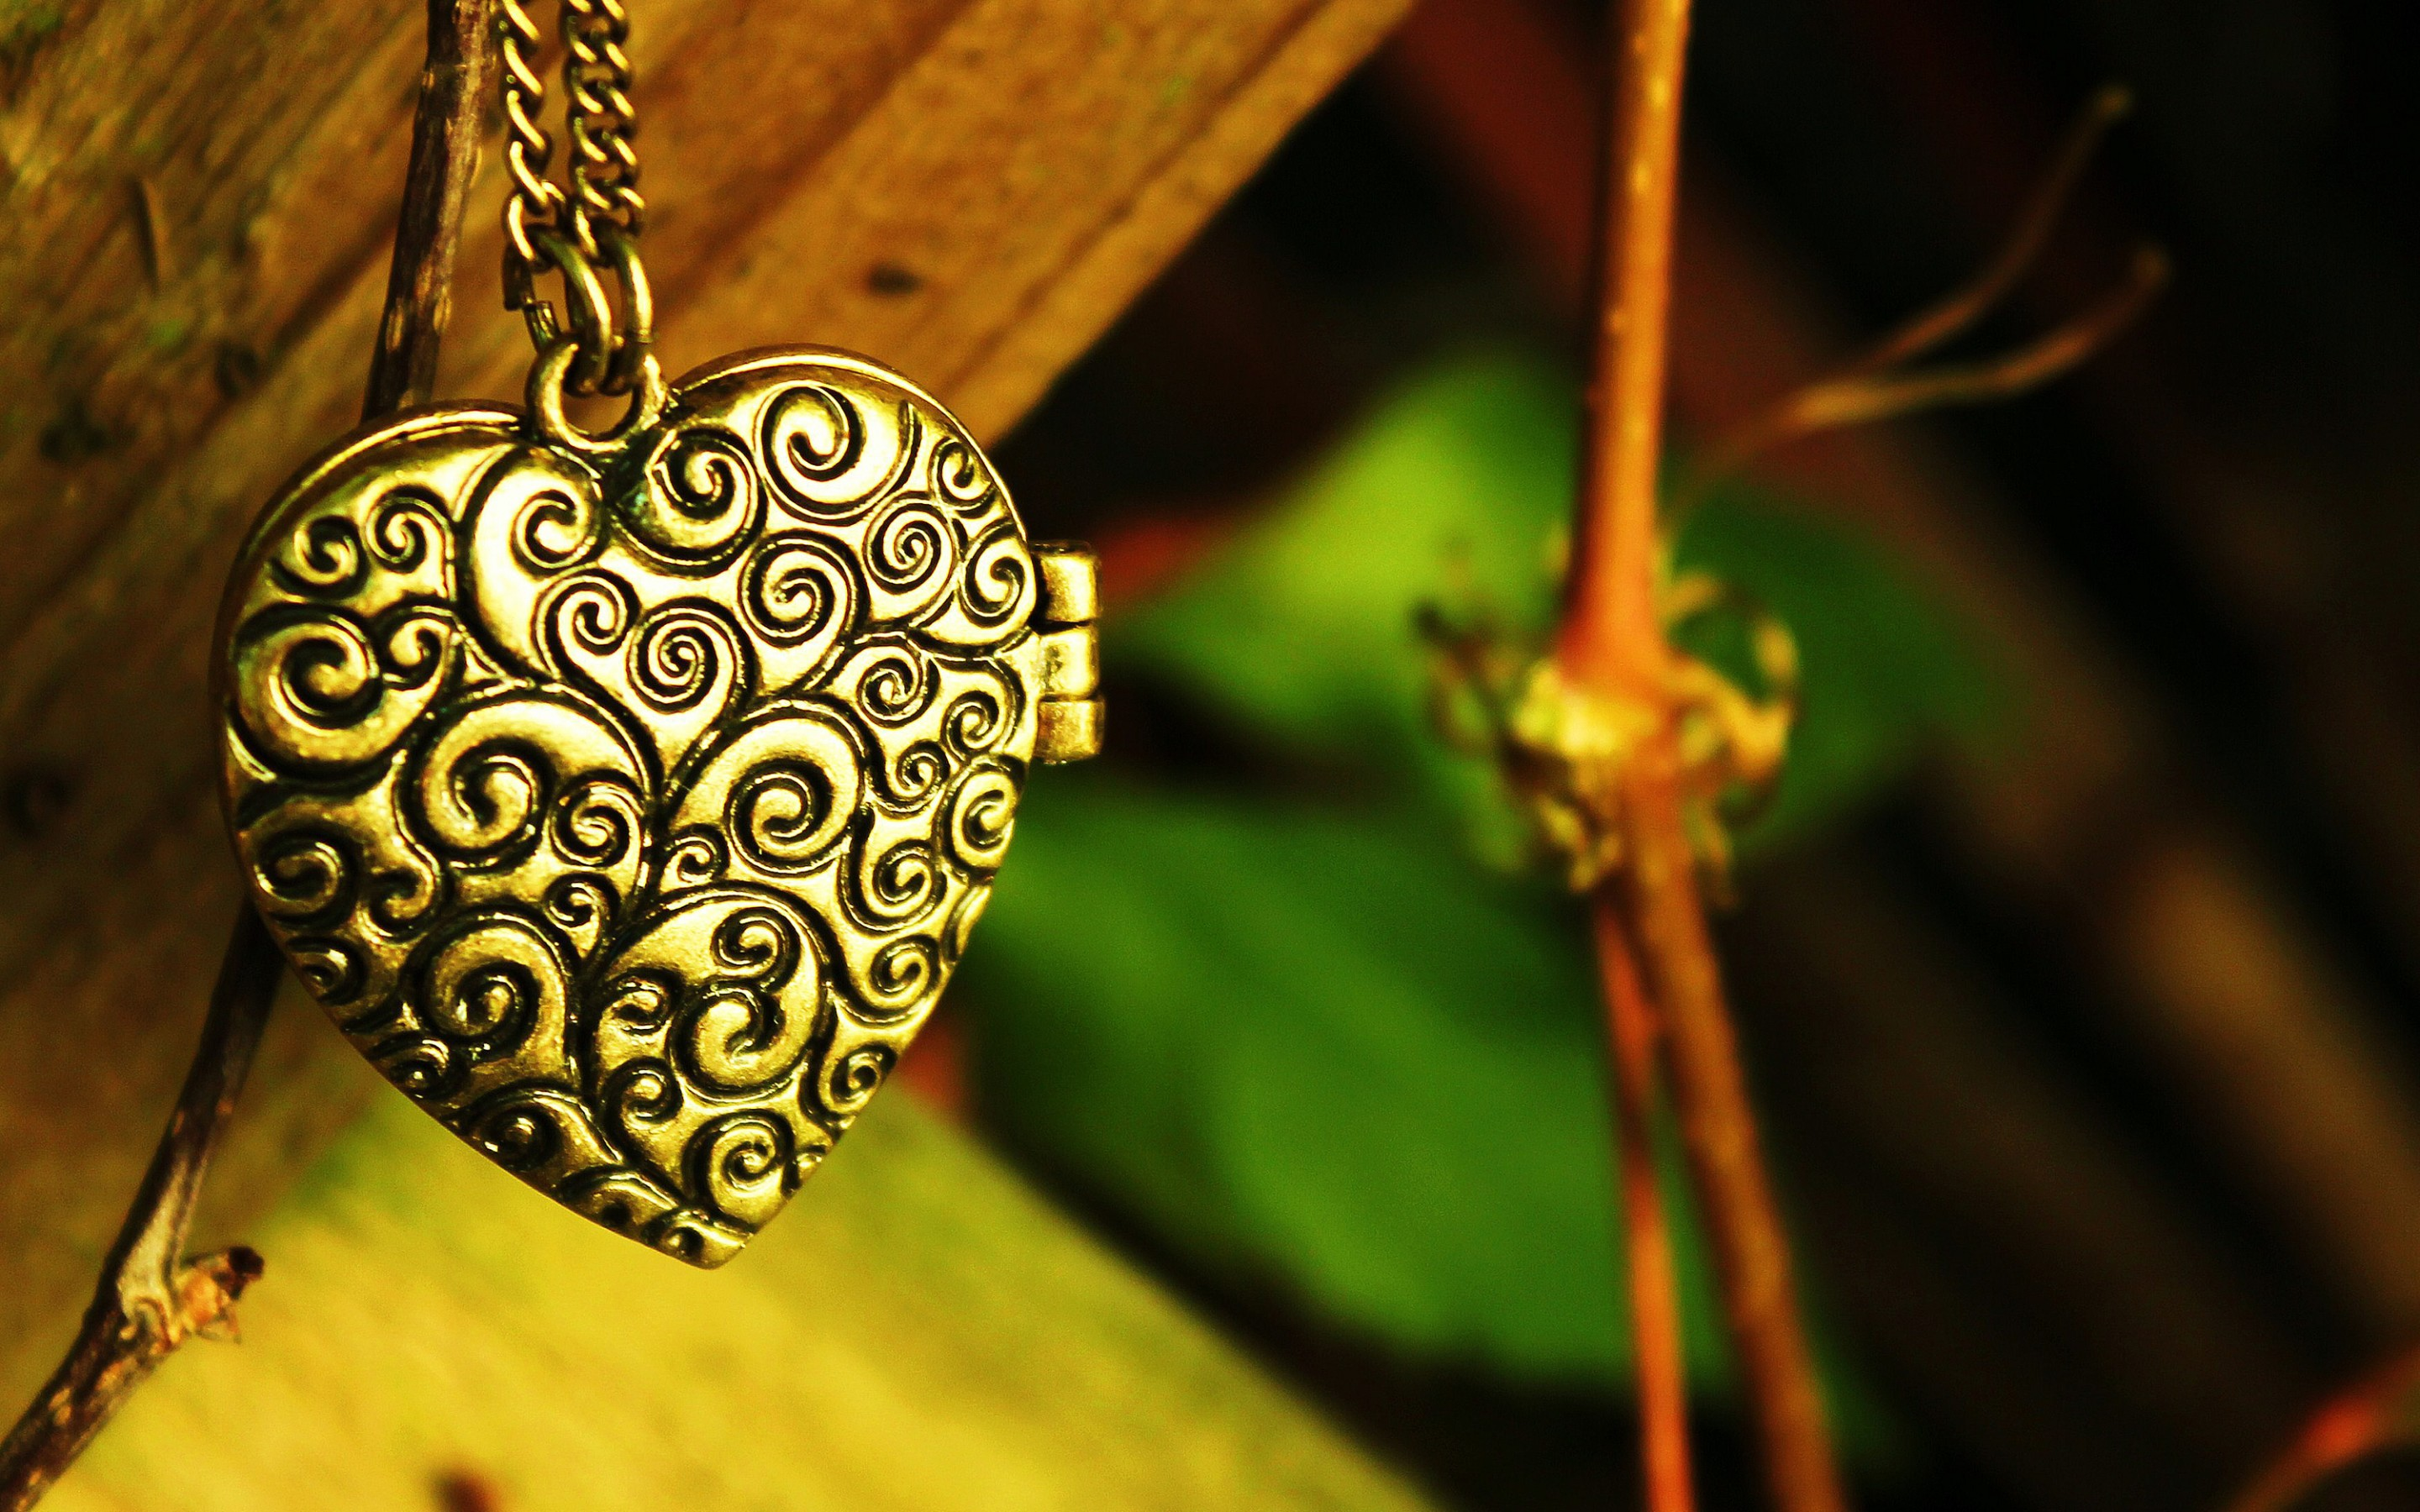 Love Jewellery Wallpaper : Jewelry computer Wallpapers, Desktop Backgrounds 2880x1800 ID:451074